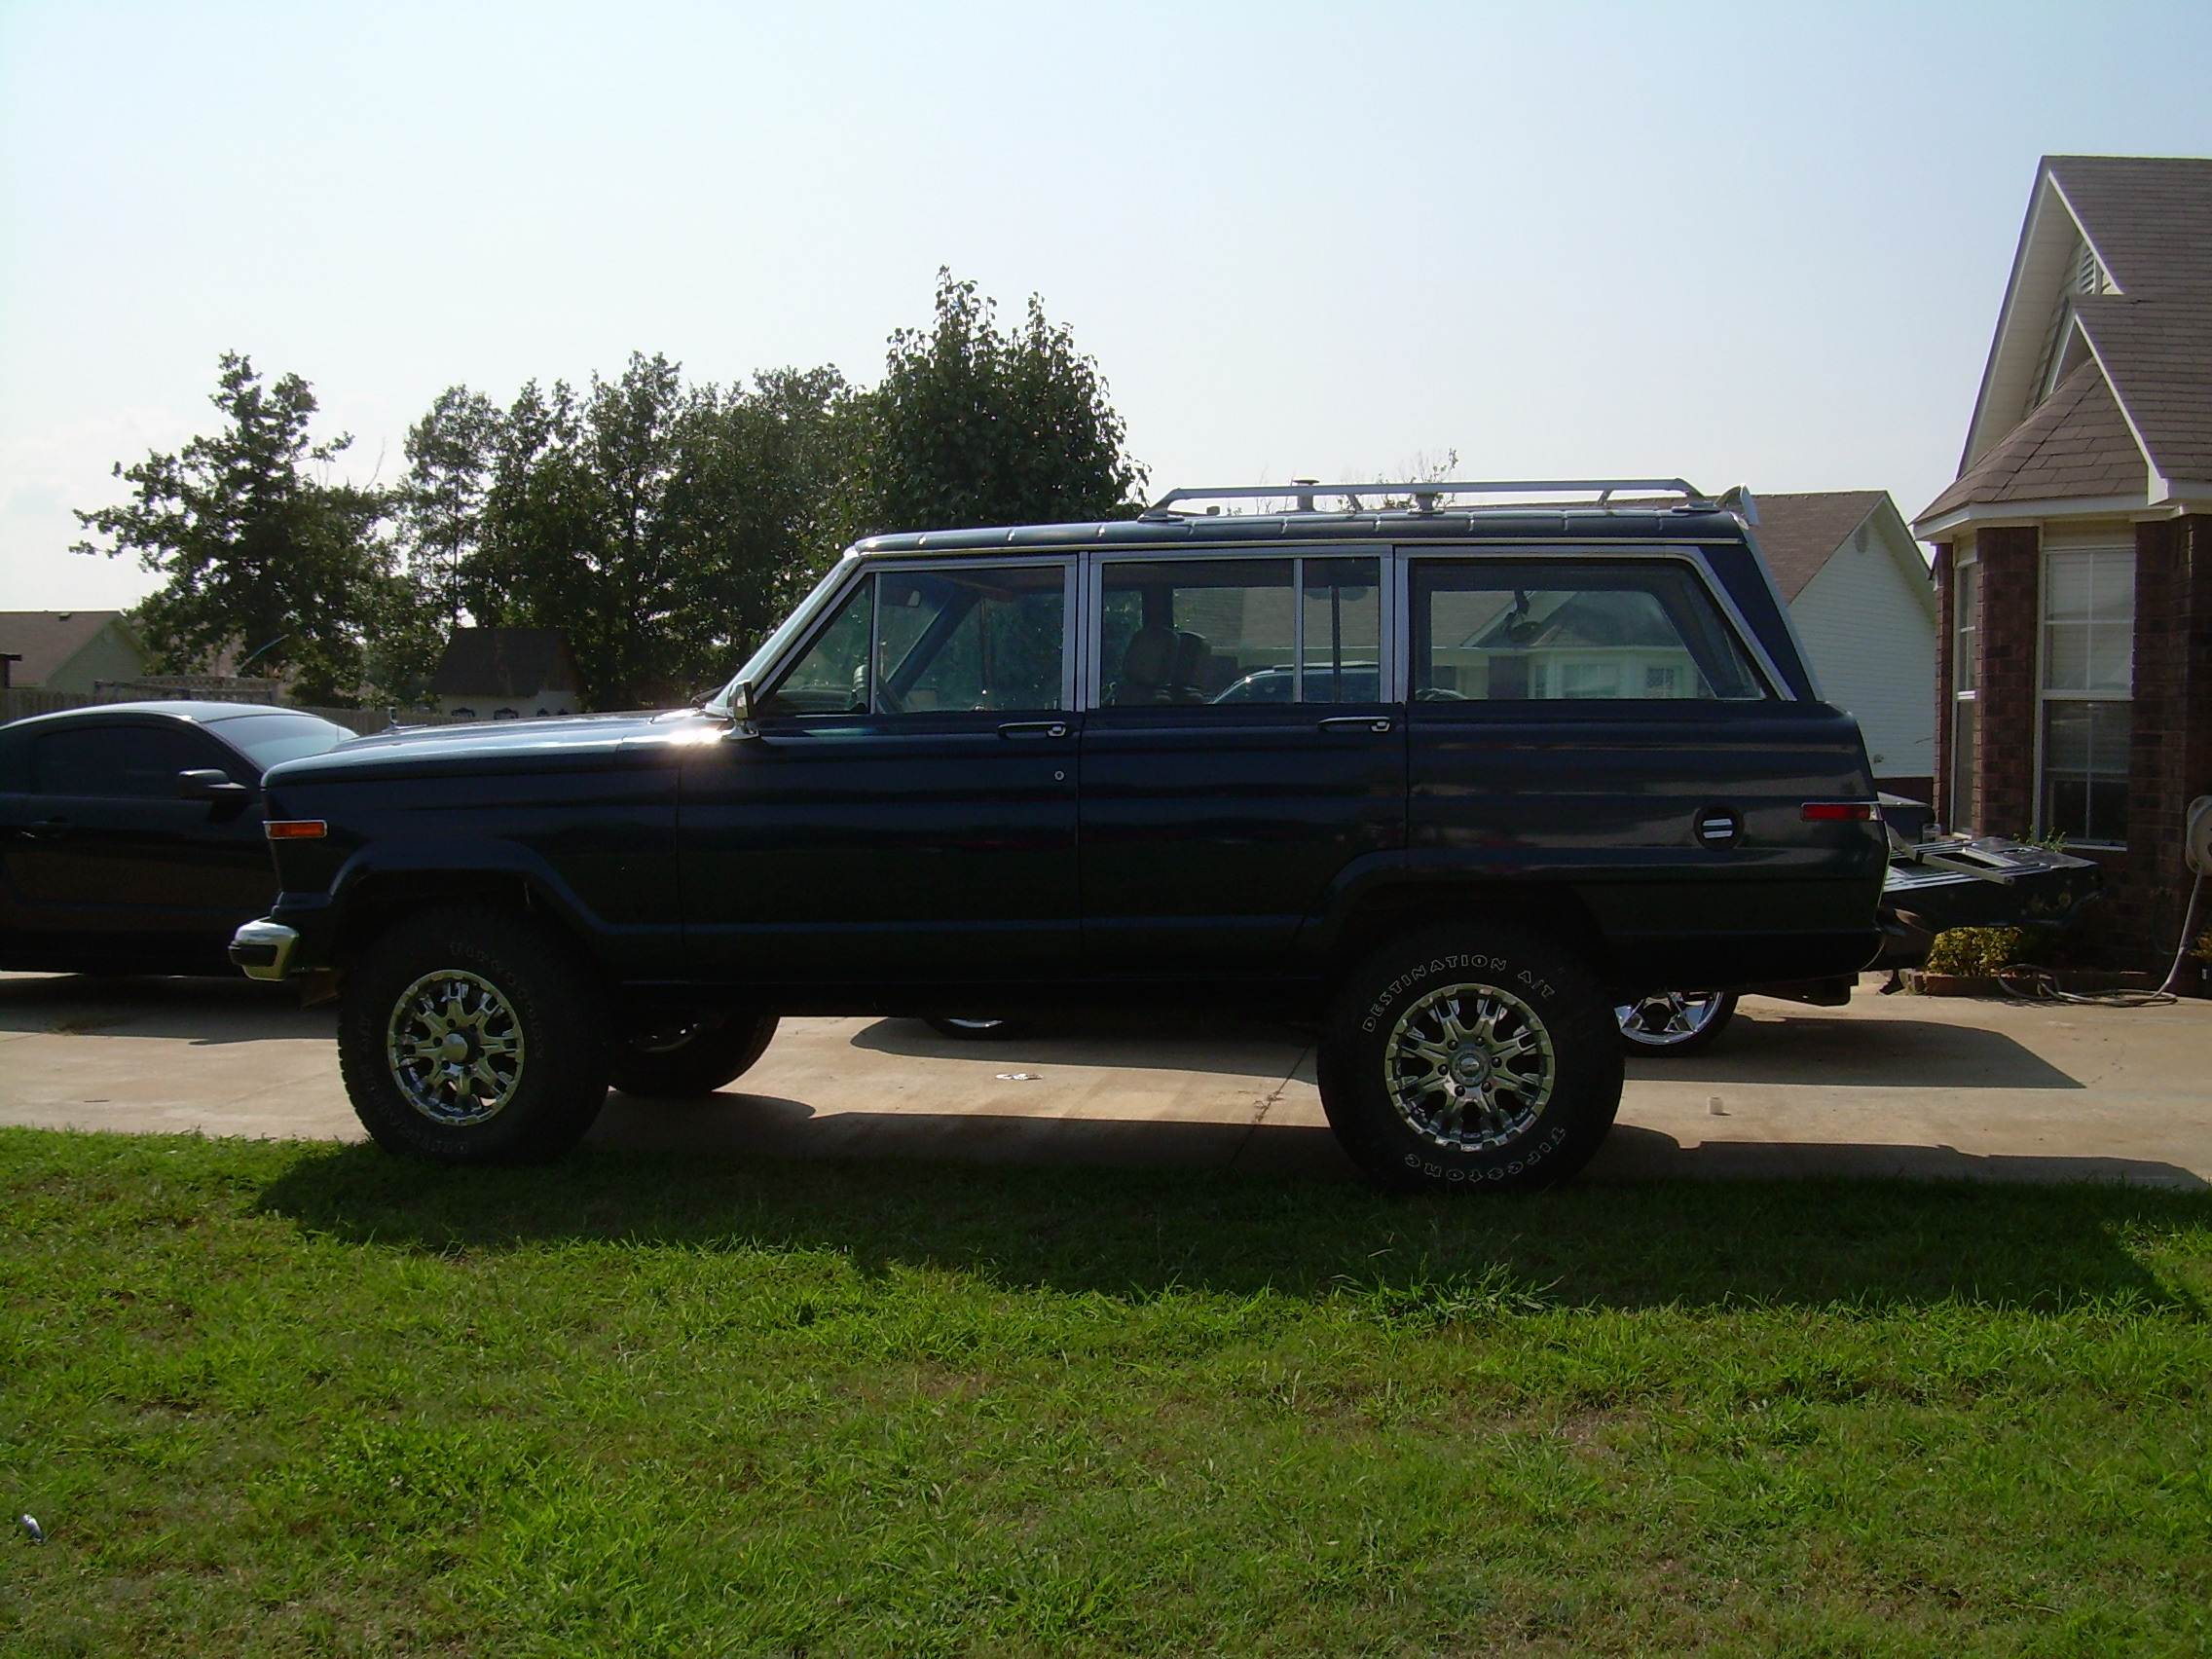 NatePearcy's 1986 Jeep Grand Wagoneer